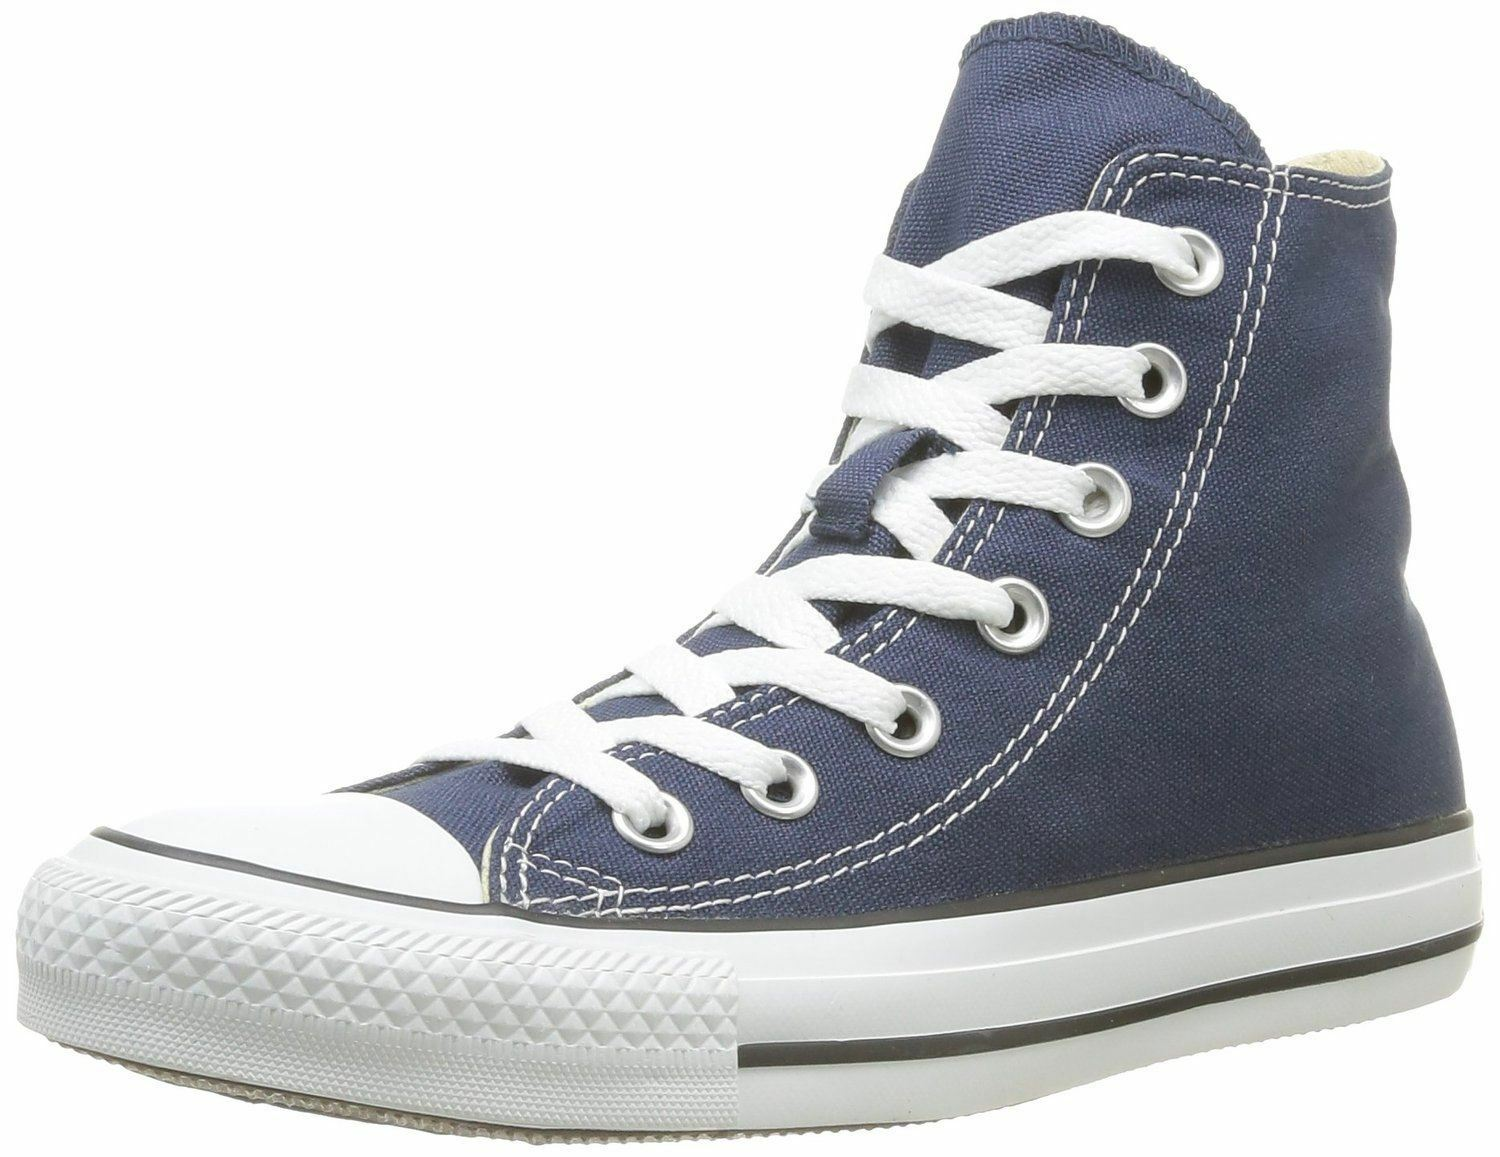 Converse Chuck Taylor All Star Navy White Hi Unisex Trainers Boots